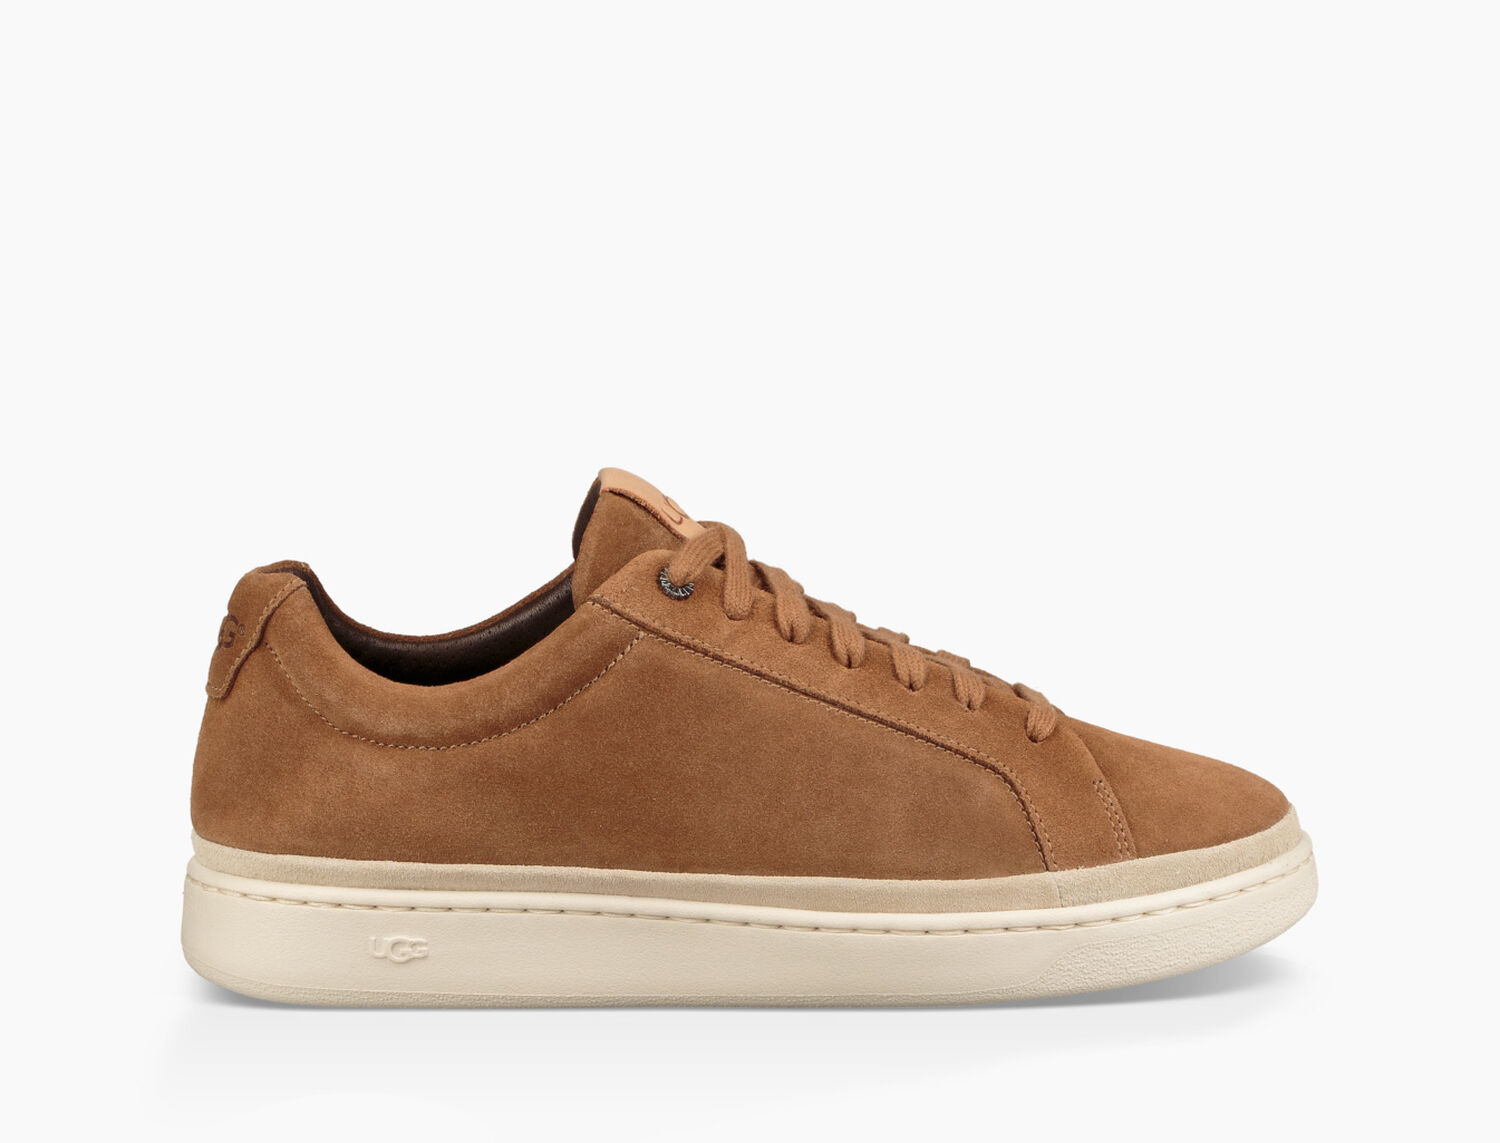 b4a18a14214 Men's Share this product Cali Sneaker Low